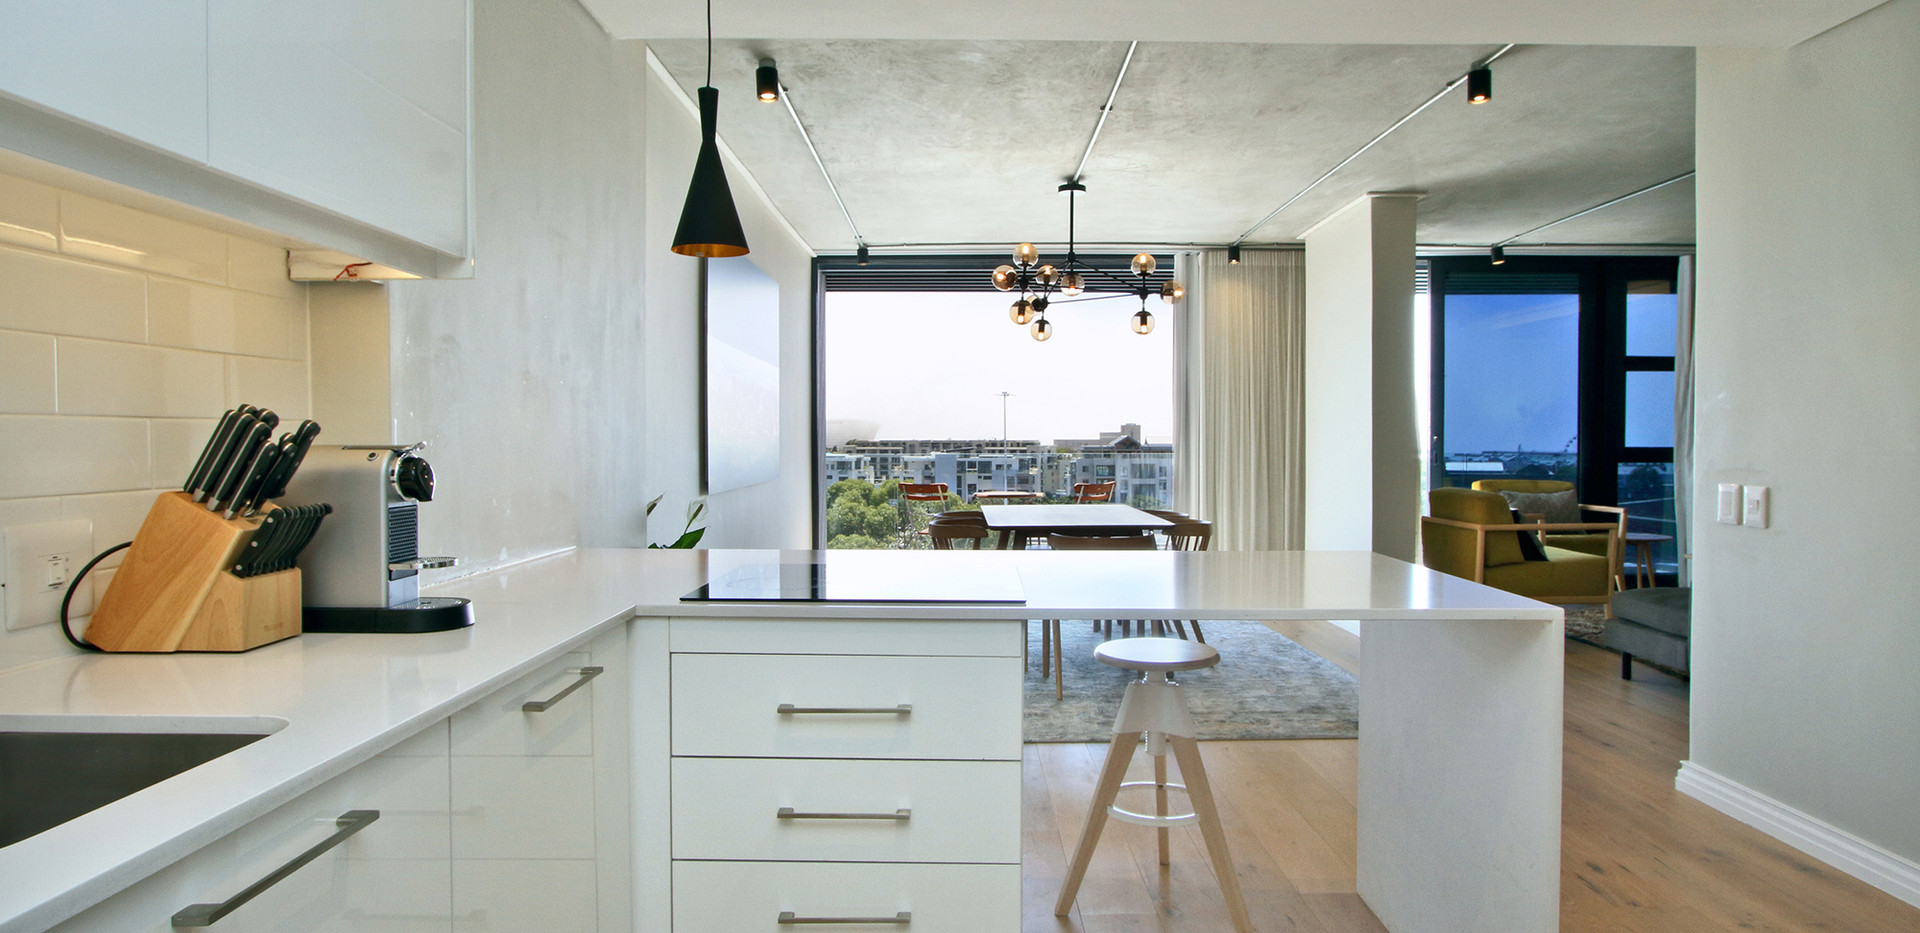 Kitchen_Penthouse_Docklands_609_ITC_2.jp